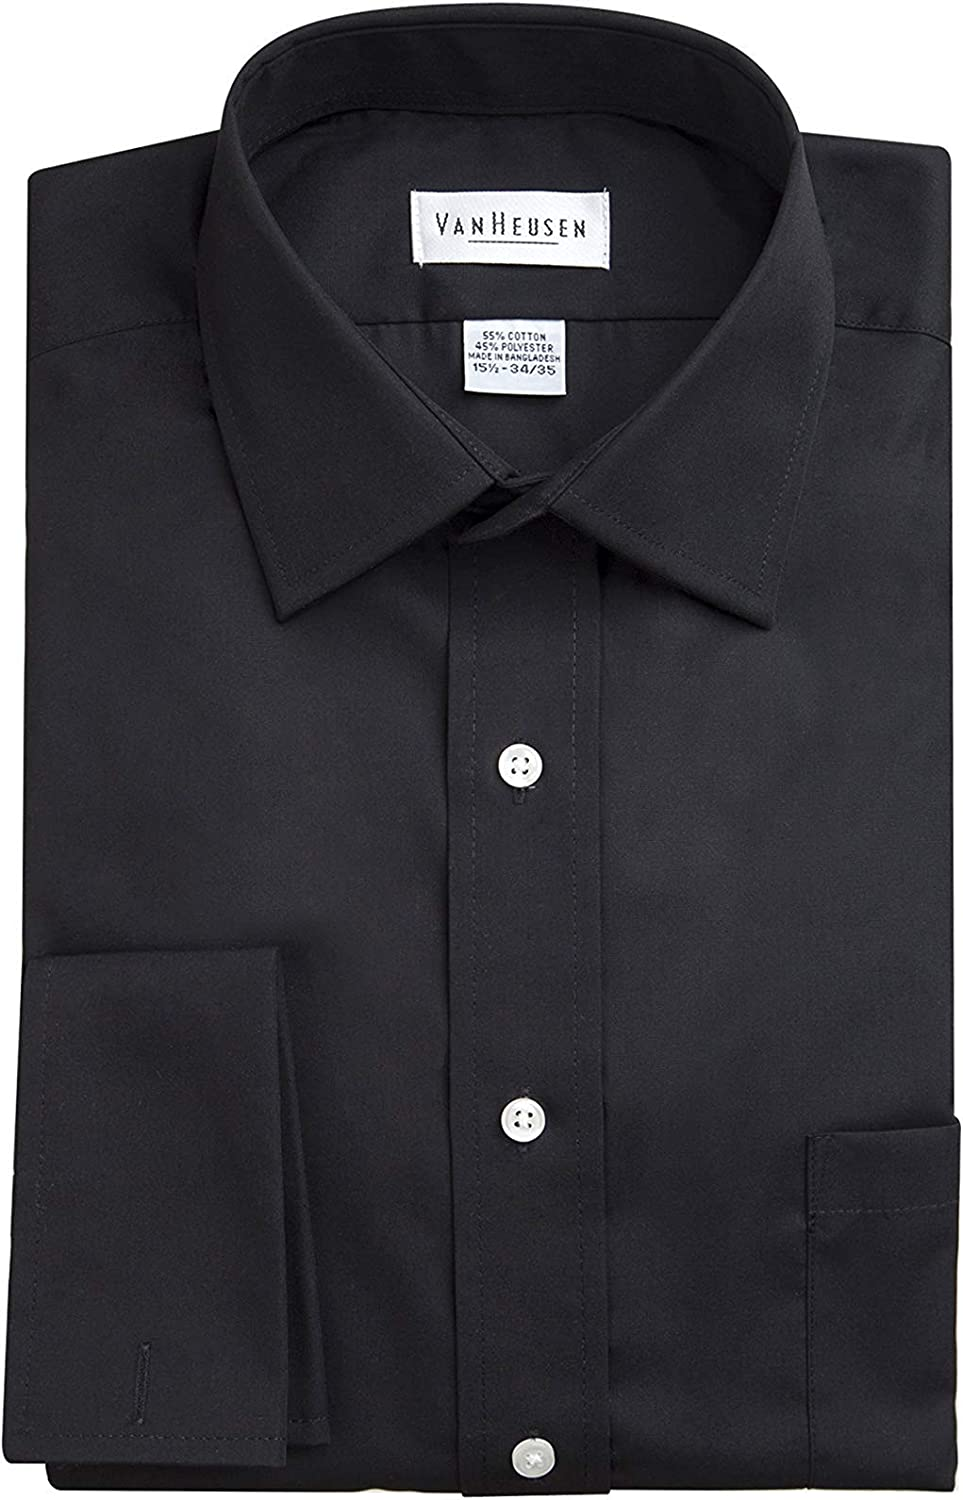 Van Heusen Mens Wrinkle Free Broadcloth French Cuff Solid Dress ...